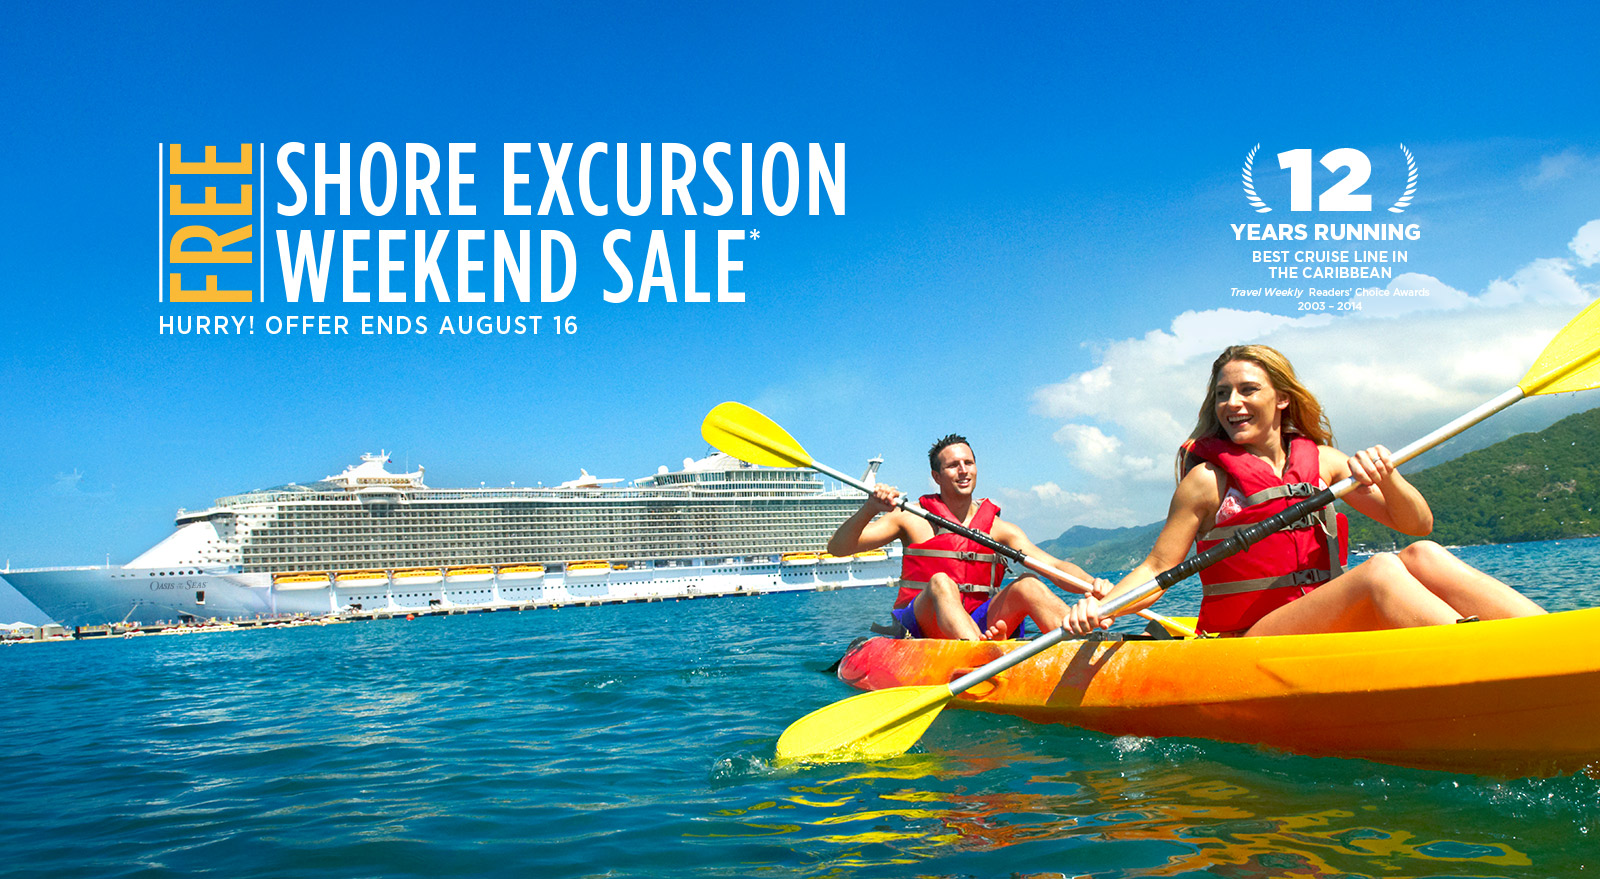 Royal Caribbean Offering Free Shore Excursions For Cruises Booked This Weeken